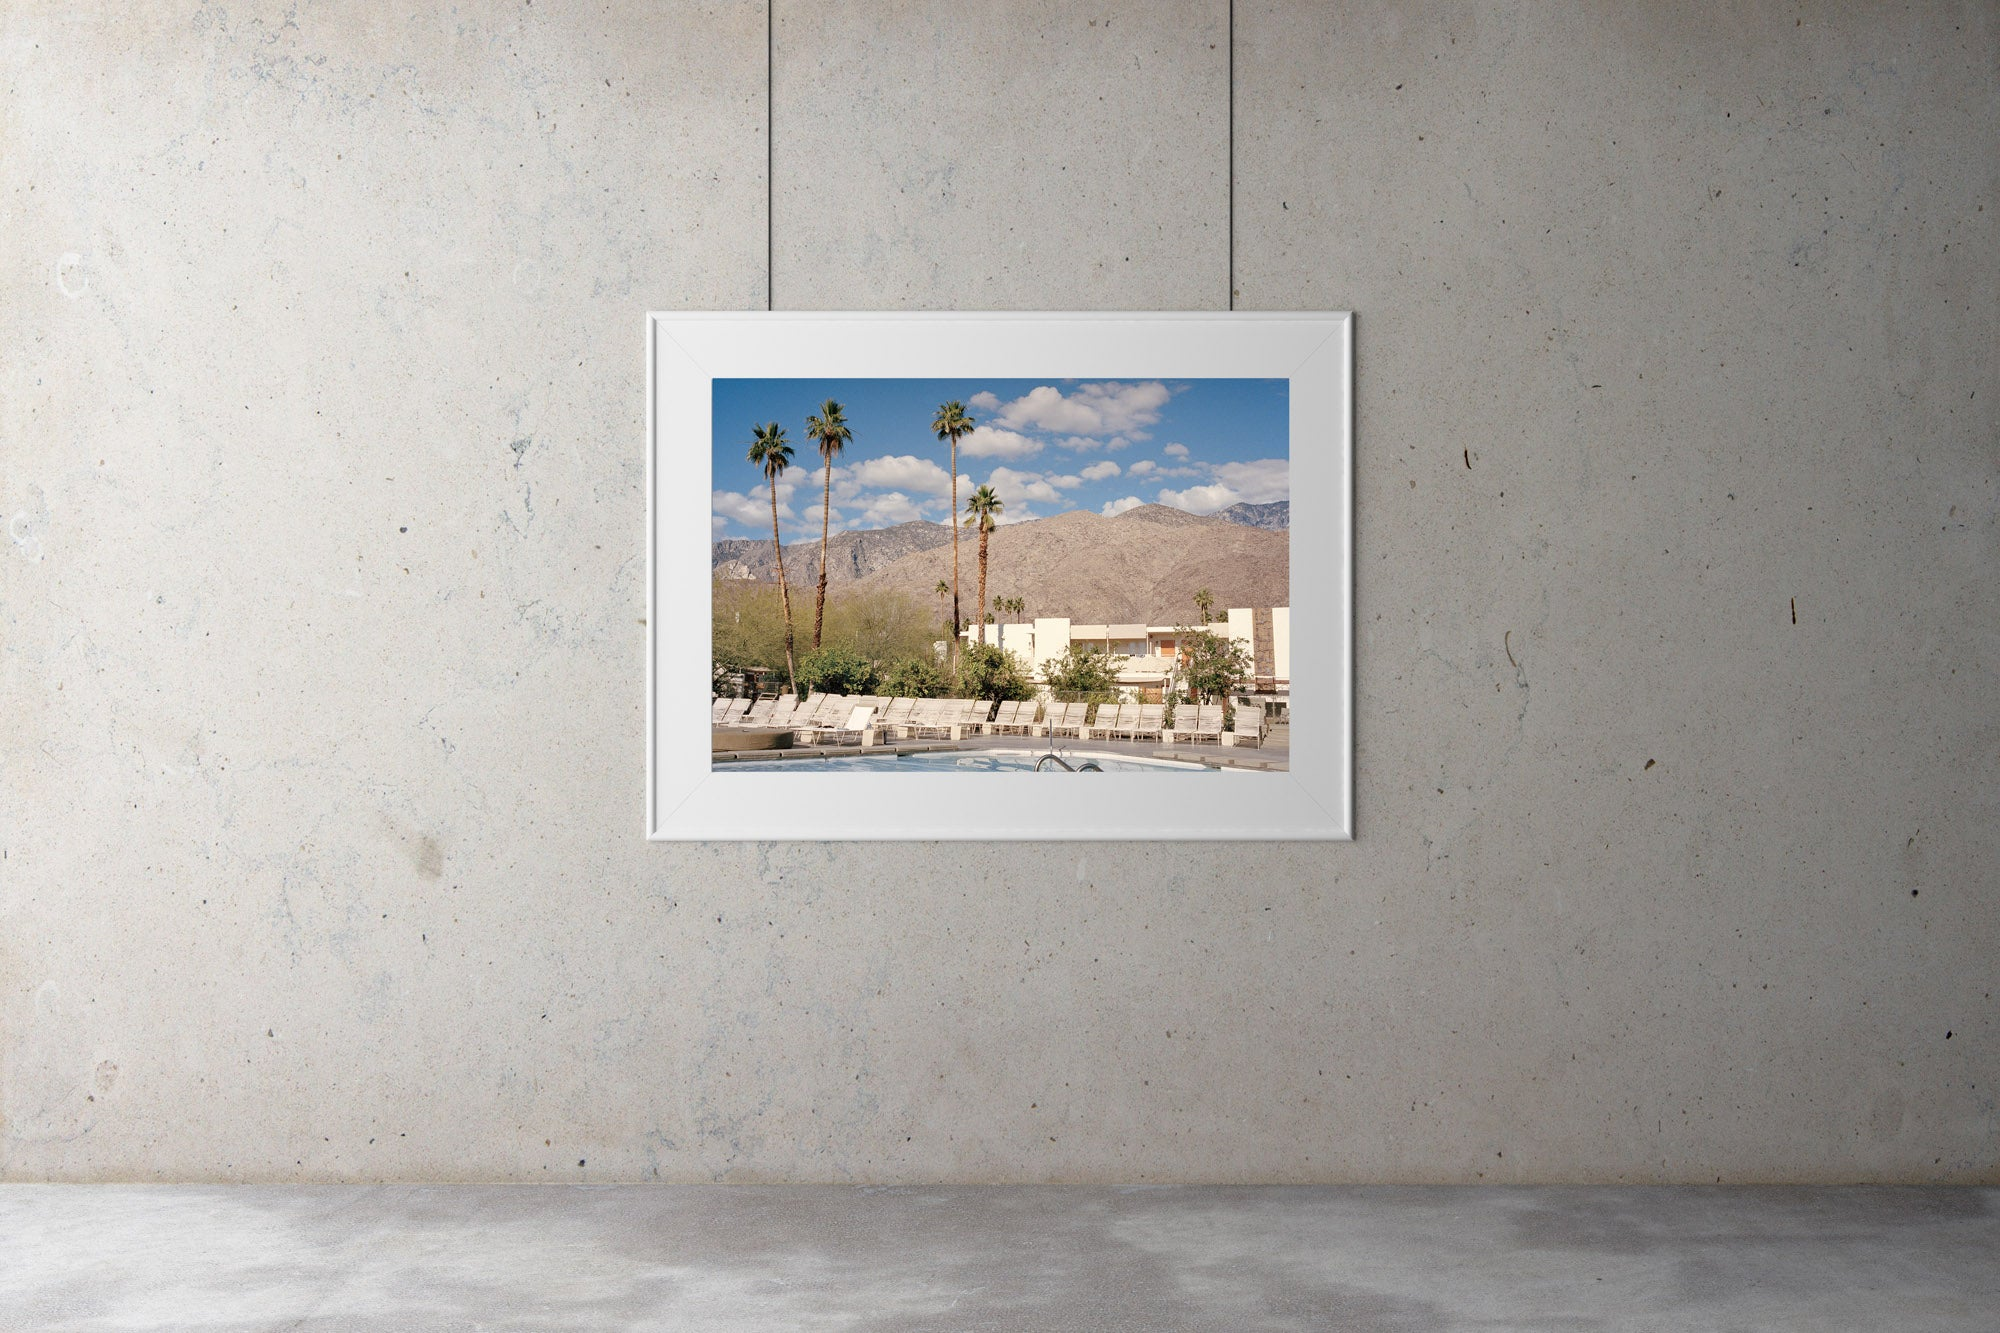 A photograph of a swimming pool looking out on palm trees & large mountains. Blue skies & clouds, Palm tree, USA, Artwork, Prints, wall art, California, Photographic prints, Ocean Palm Springs, Framed artwork, Photography,  Film photography, Vintage photo style,  Interior design, beach, buy Art, photography art, buy art, ace hotel, Prints for sale, art prints, colour photography, surfing, surfboard, Malibu, Malibu,  surfing, sun, beach, sun baking, mid century